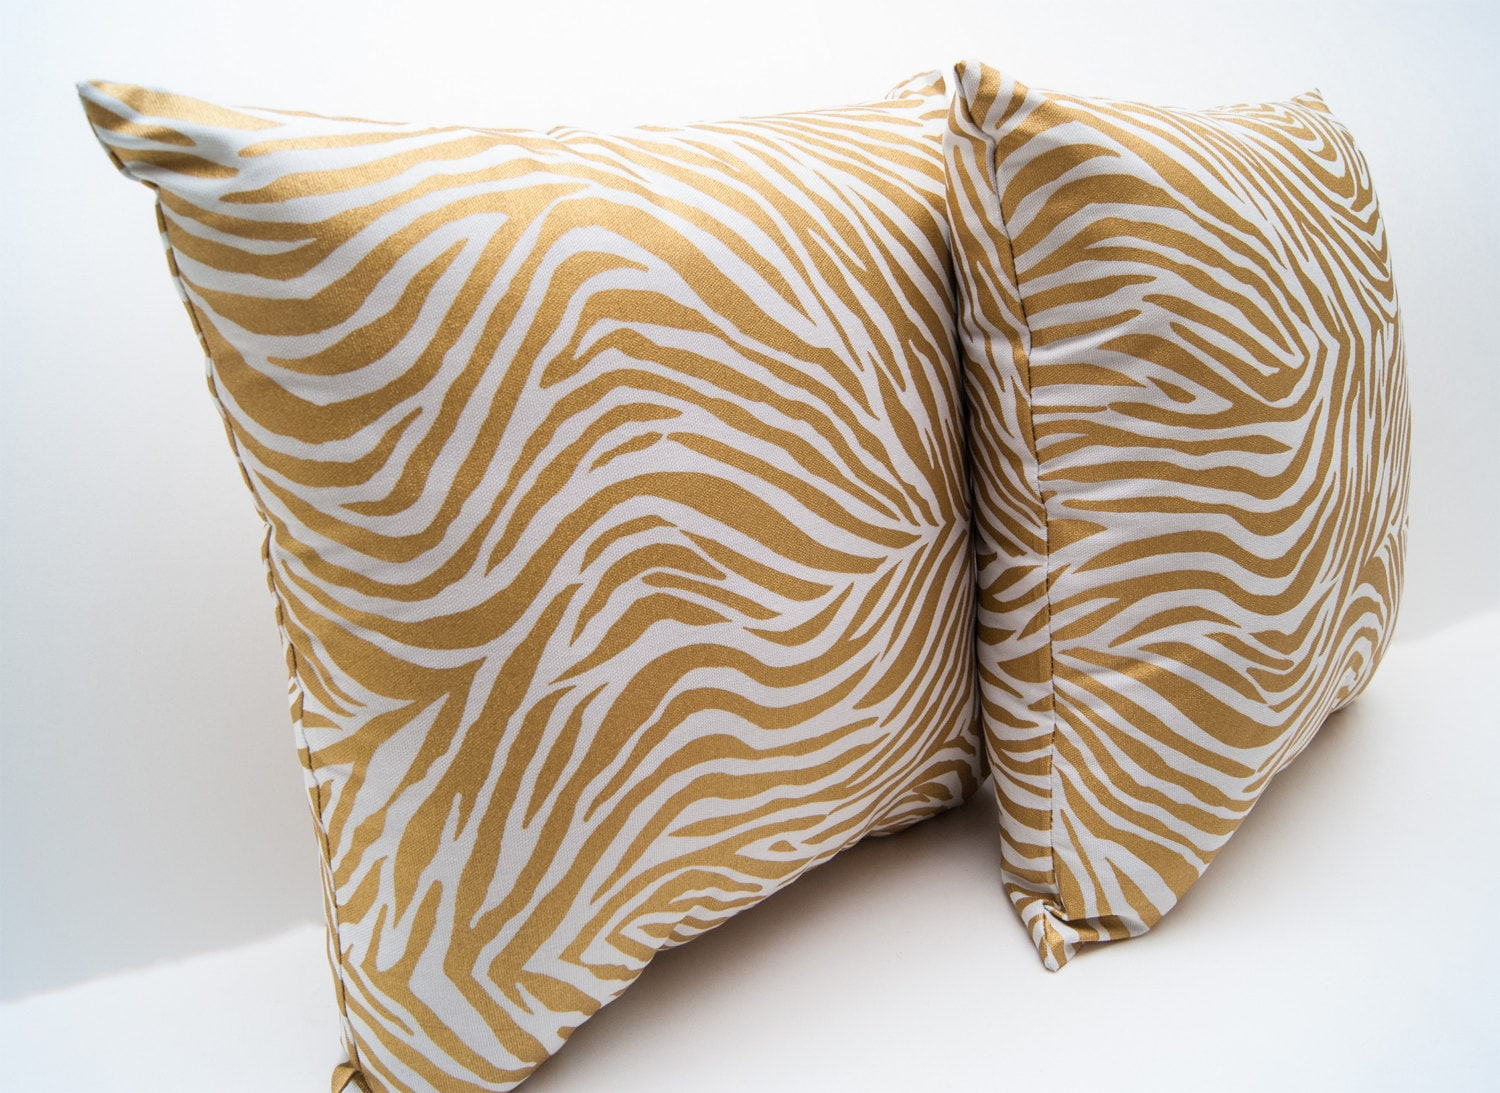 Animal Print Pillows Couch : Throw Pillow Metallic Zebra Print Throw Pillow Accent